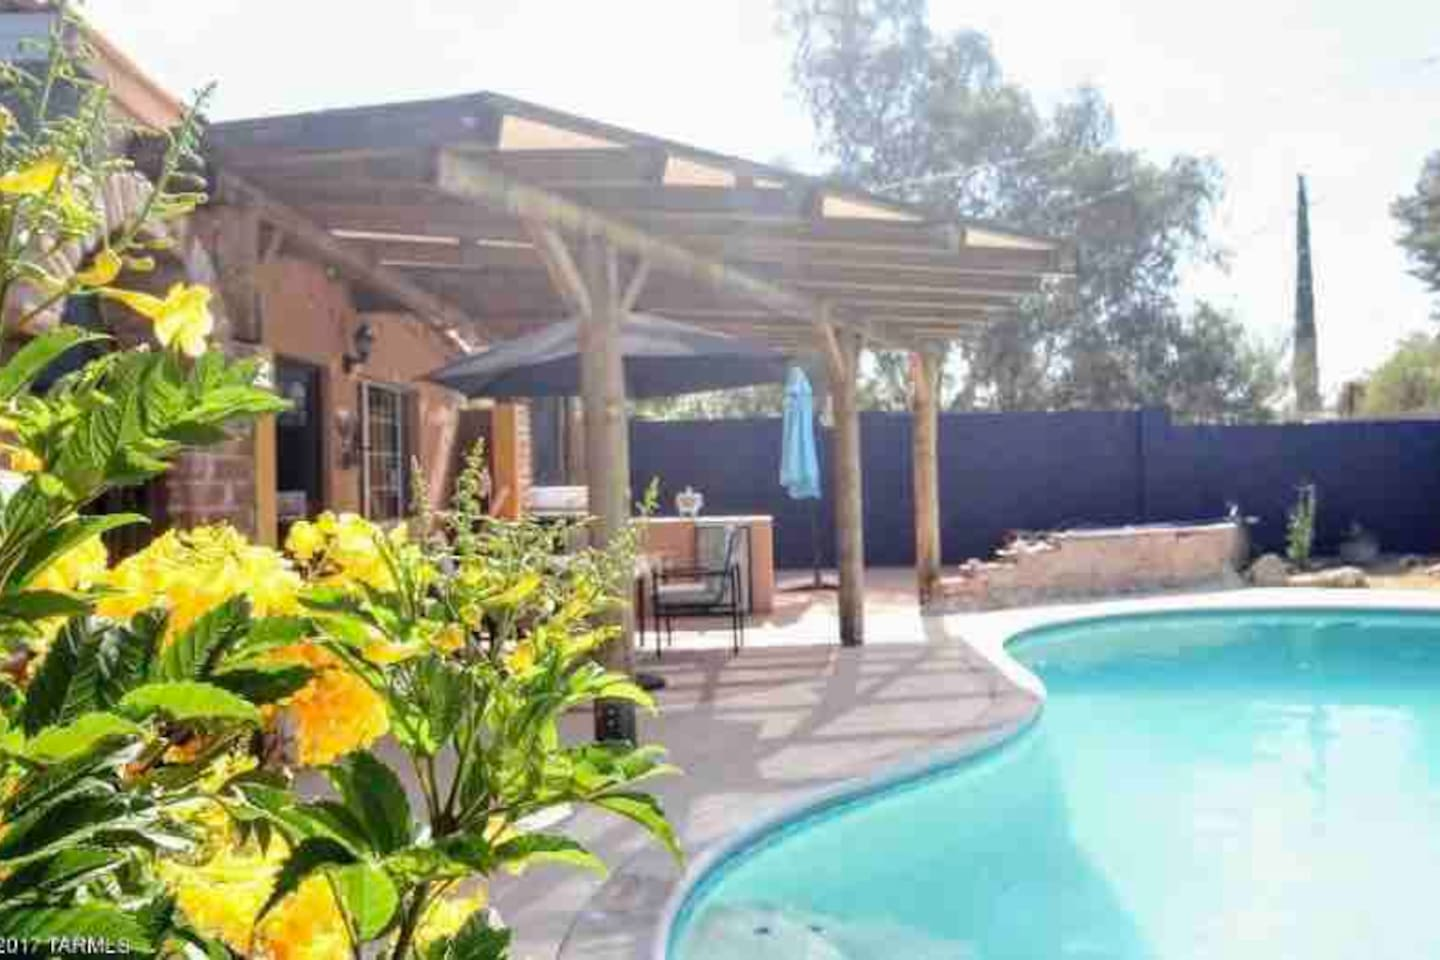 Private pool with covered ramada, BBQ, outdoor fridge, and even a putting green! Perfect for relaxing in private.